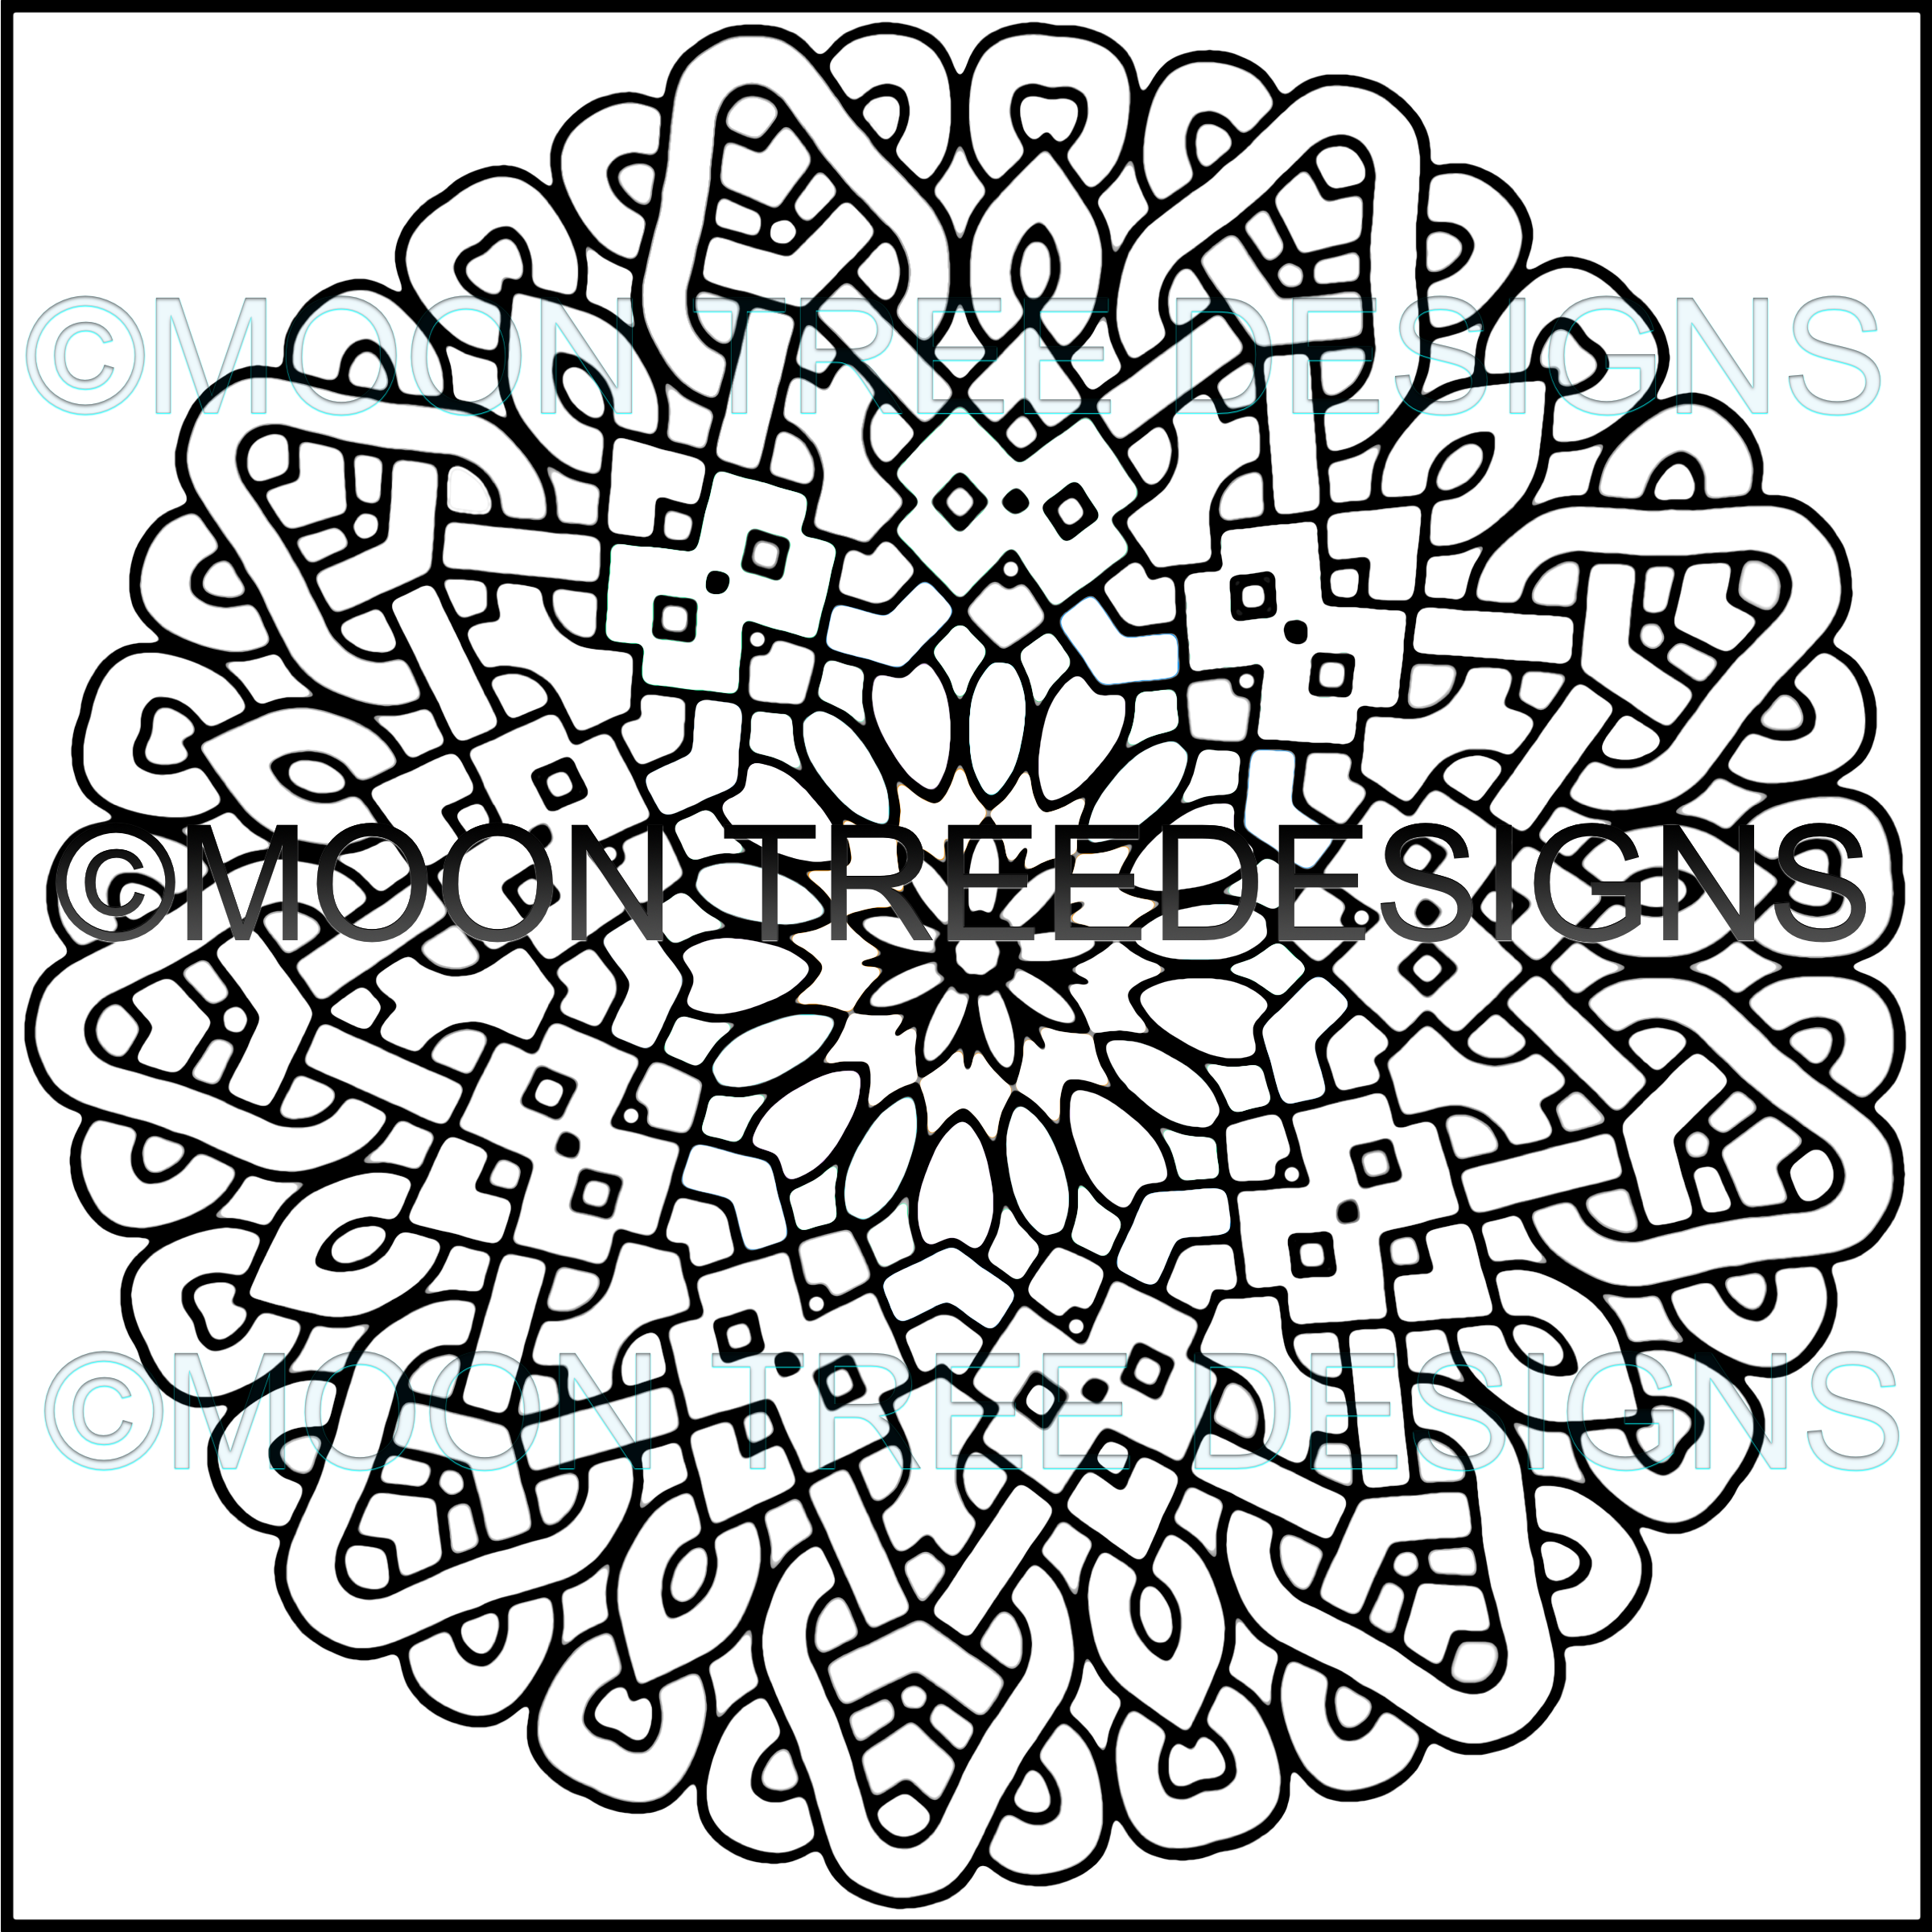 A Coloring Book That Can Be Downloaded And Colored You Print Out As Many Want This Has 20 Pages With 4